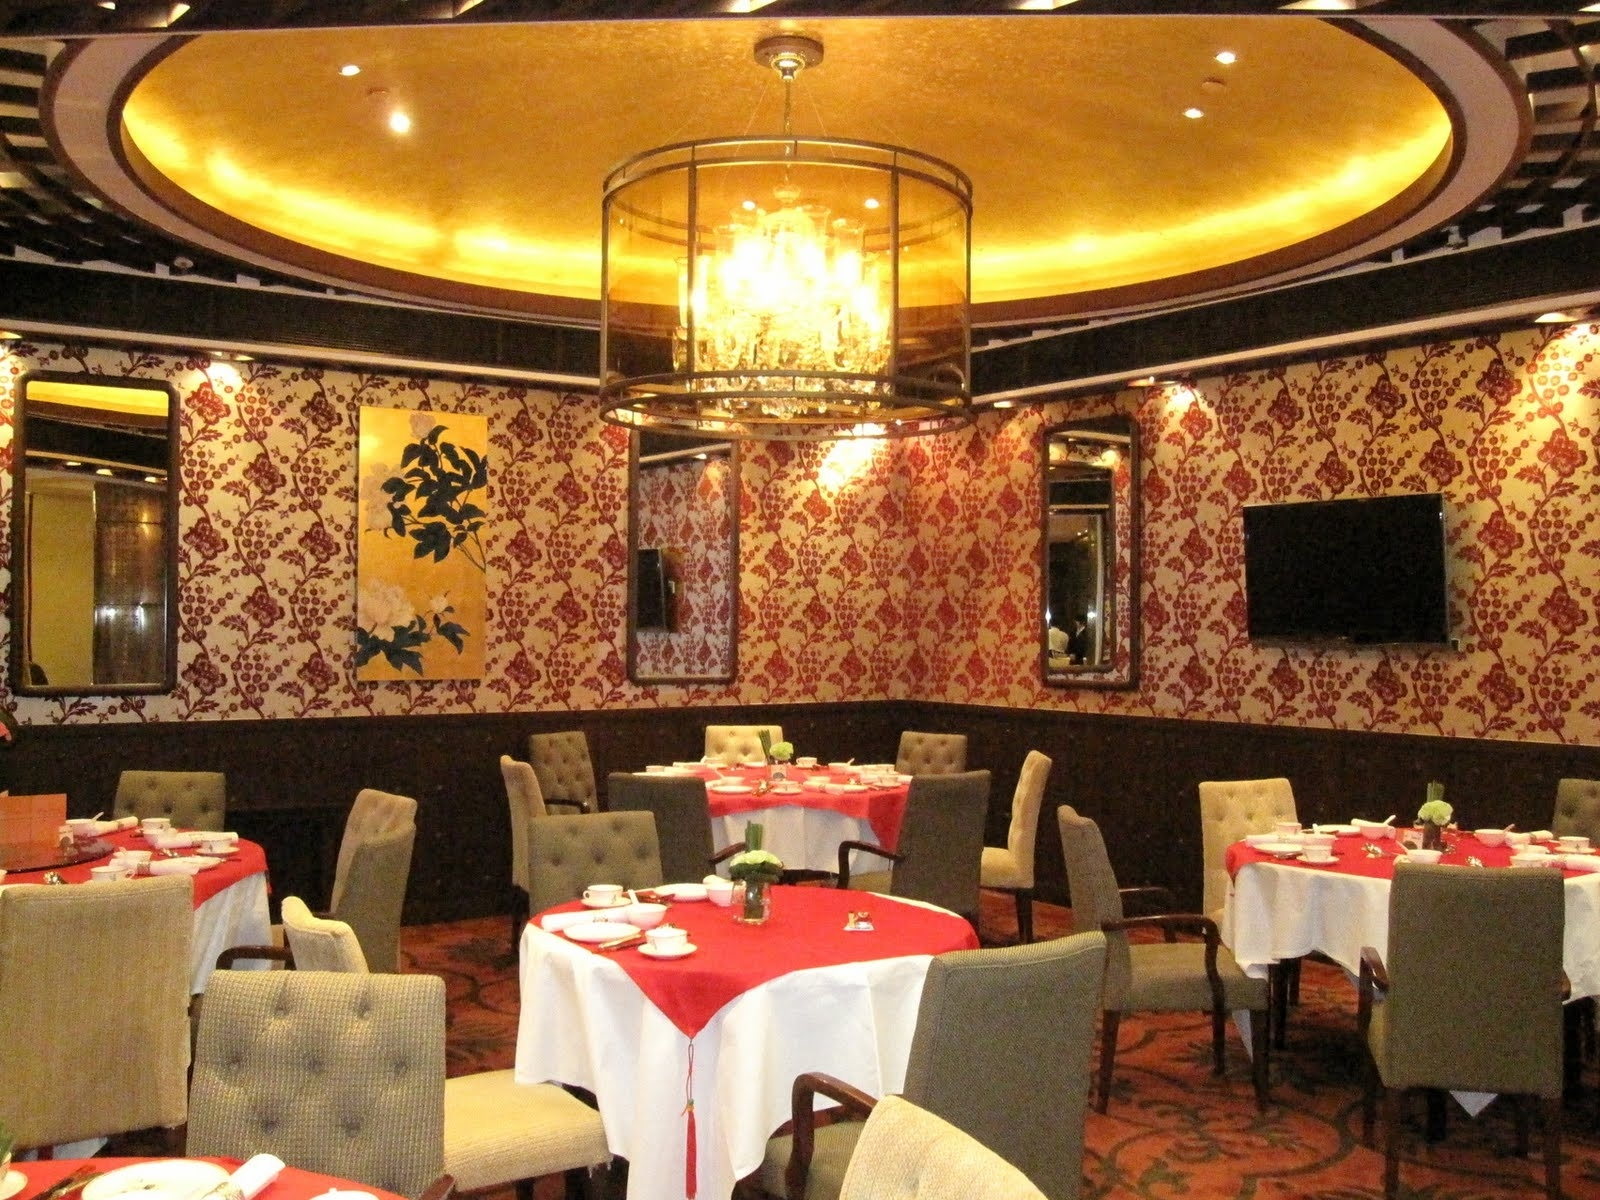 My Favorite Restaurant In Hk: Peking Garden - Alexandra House in Peking Garden Restaurant (Alexandra House) Central Hong Kong